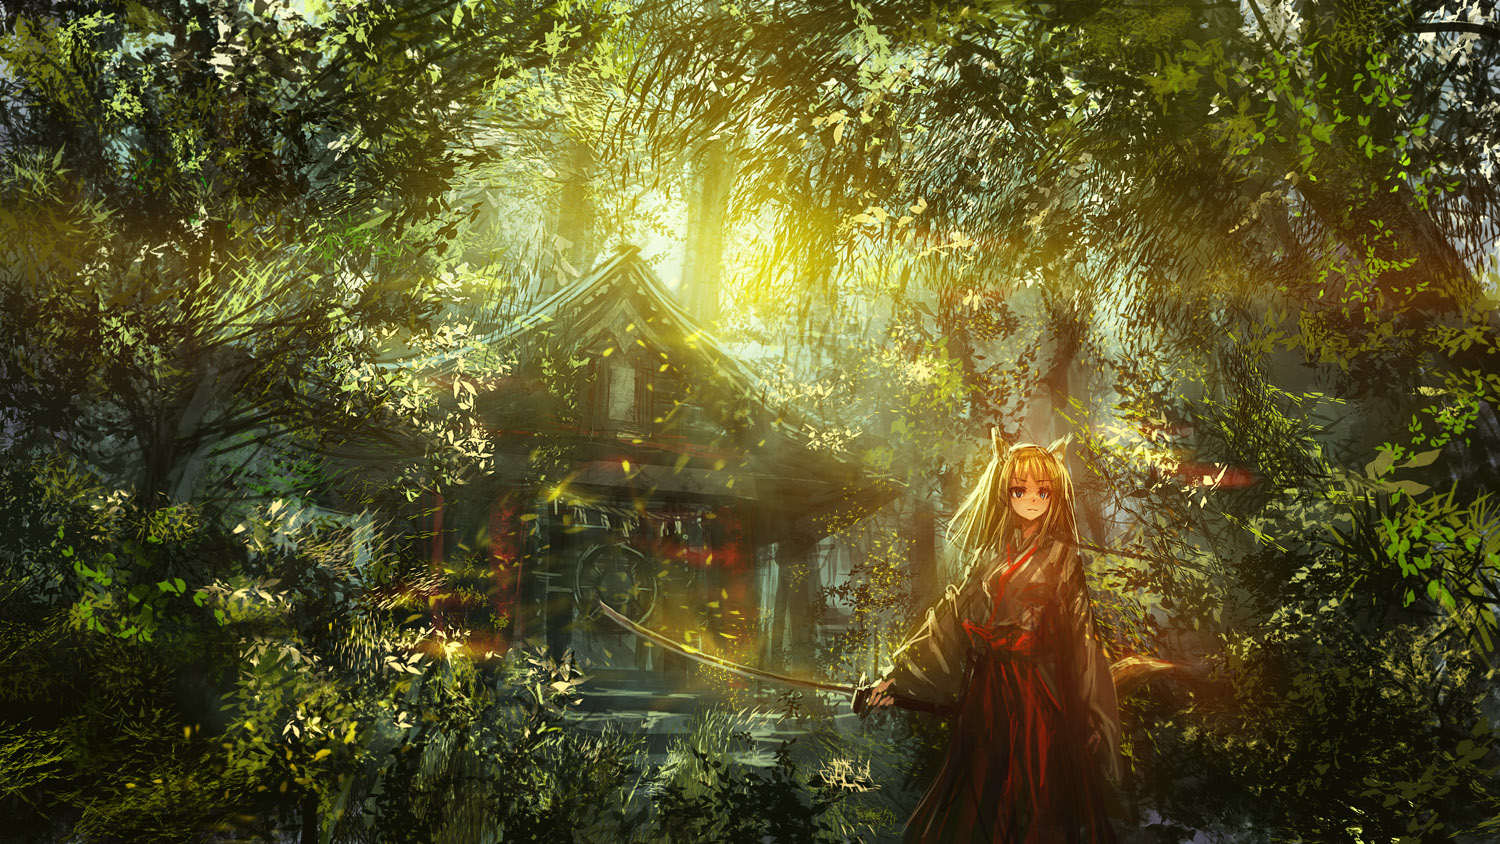 anime girl in garden